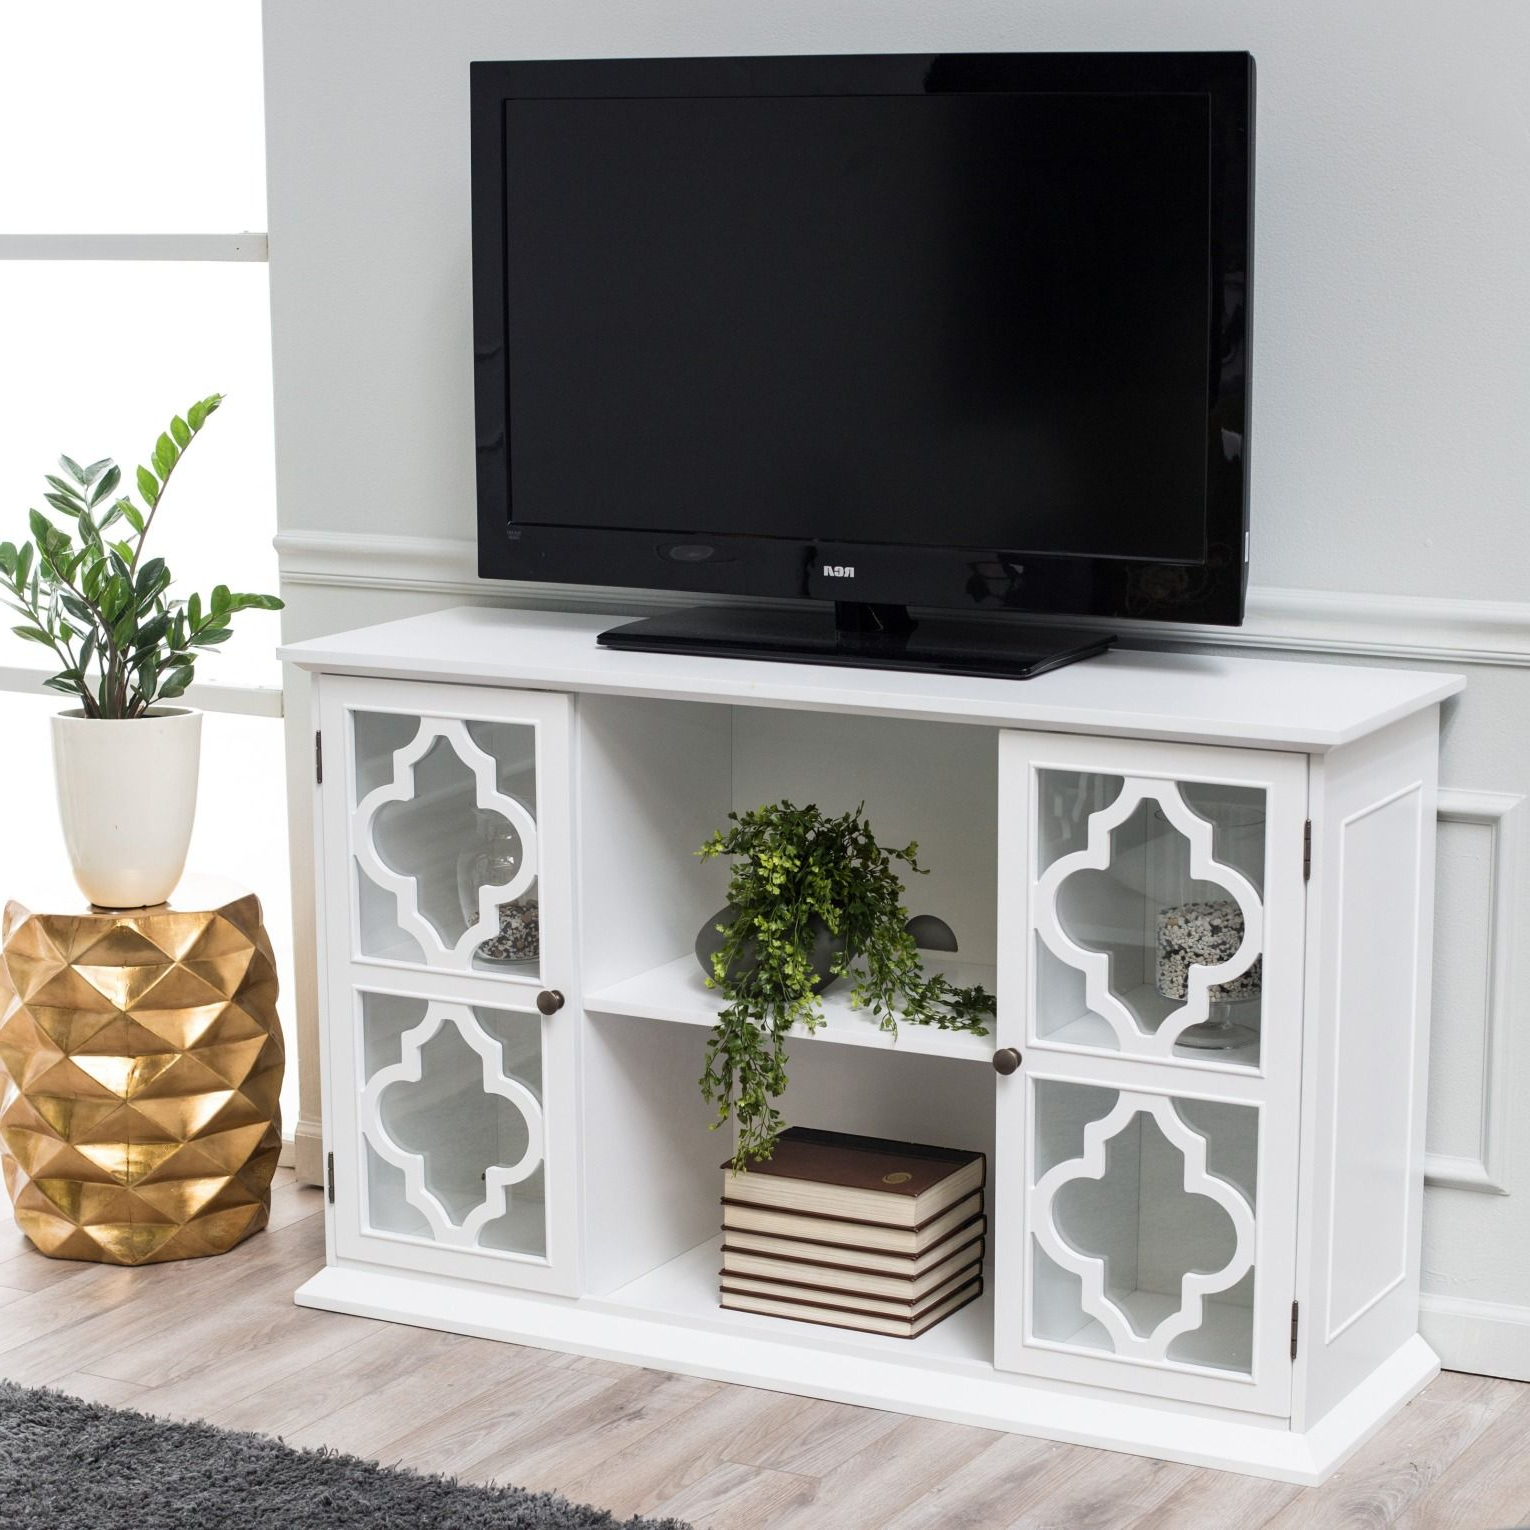 Living Regarding Laurent 70 Inch Tv Stands (Gallery 3 of 20)